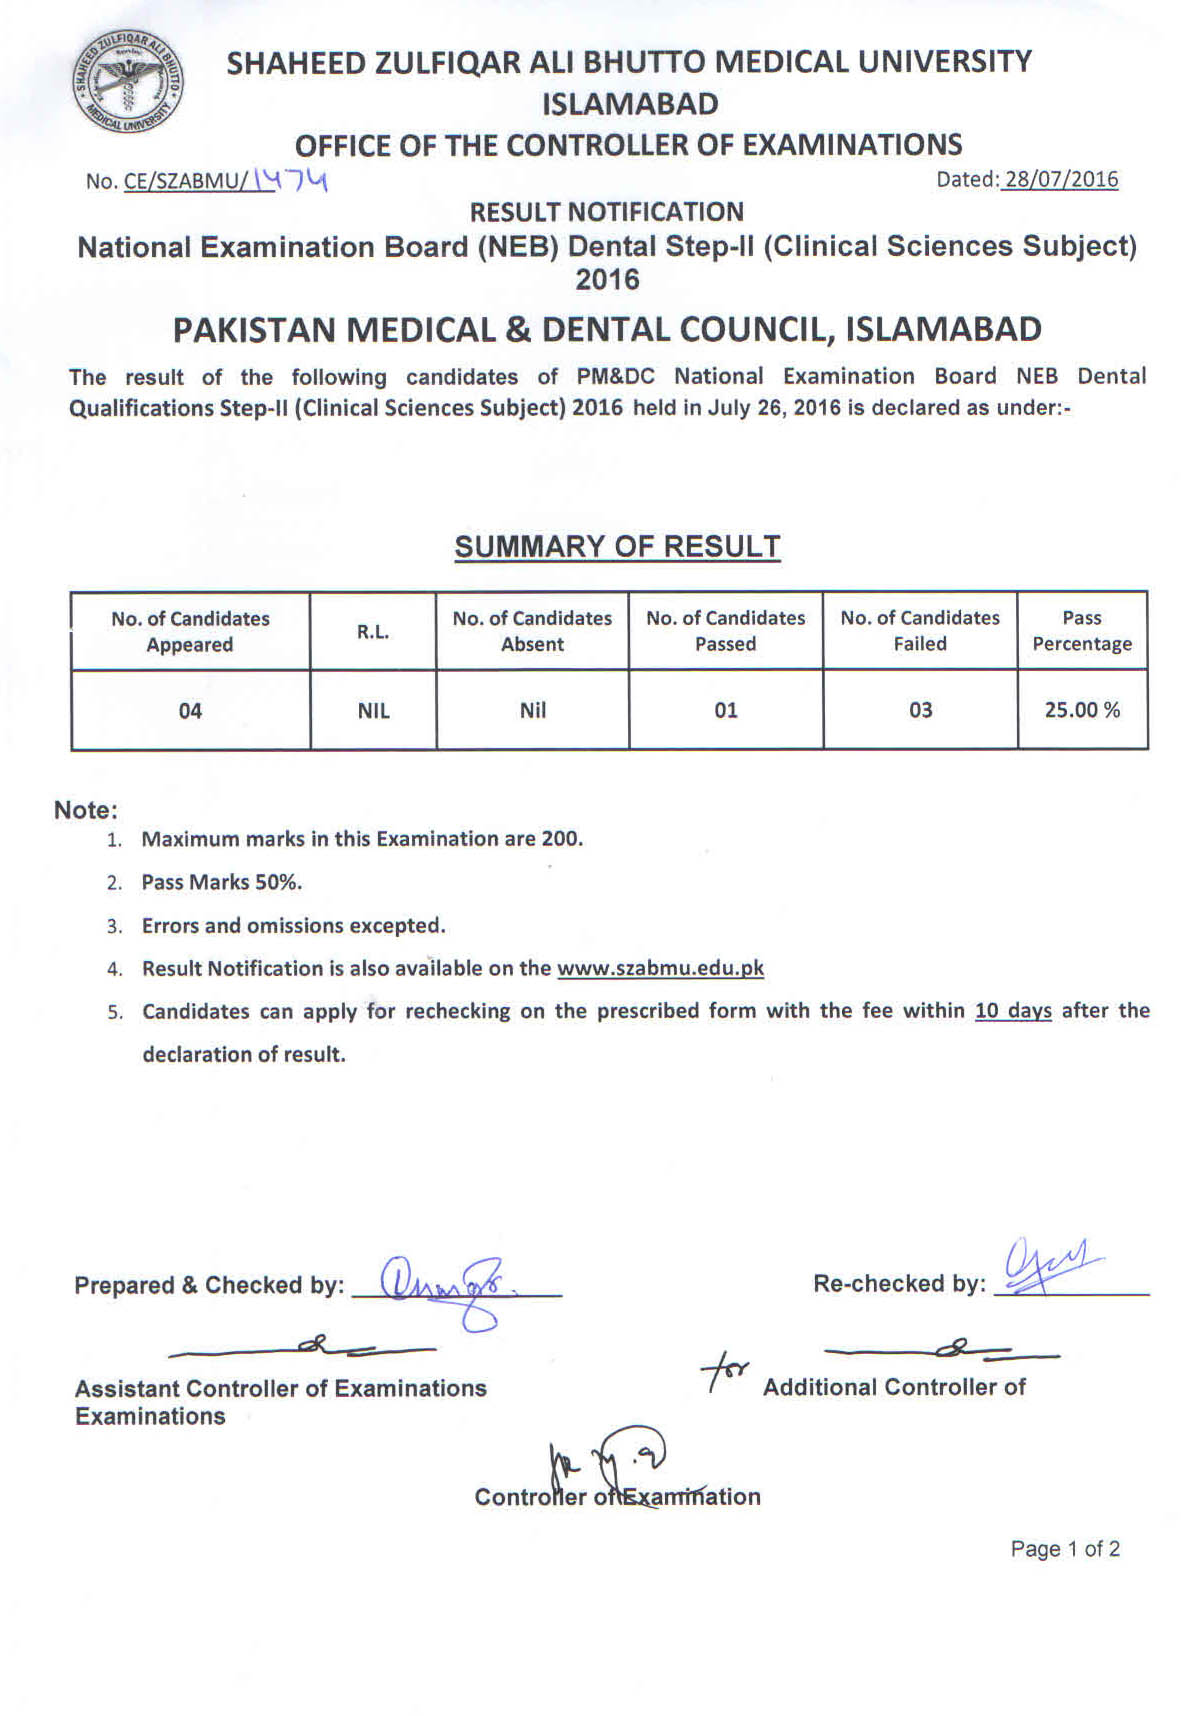 Result Notification - PM&DC National Examination Board Dental Step-Il (Clinical Sciences Subject) 2016